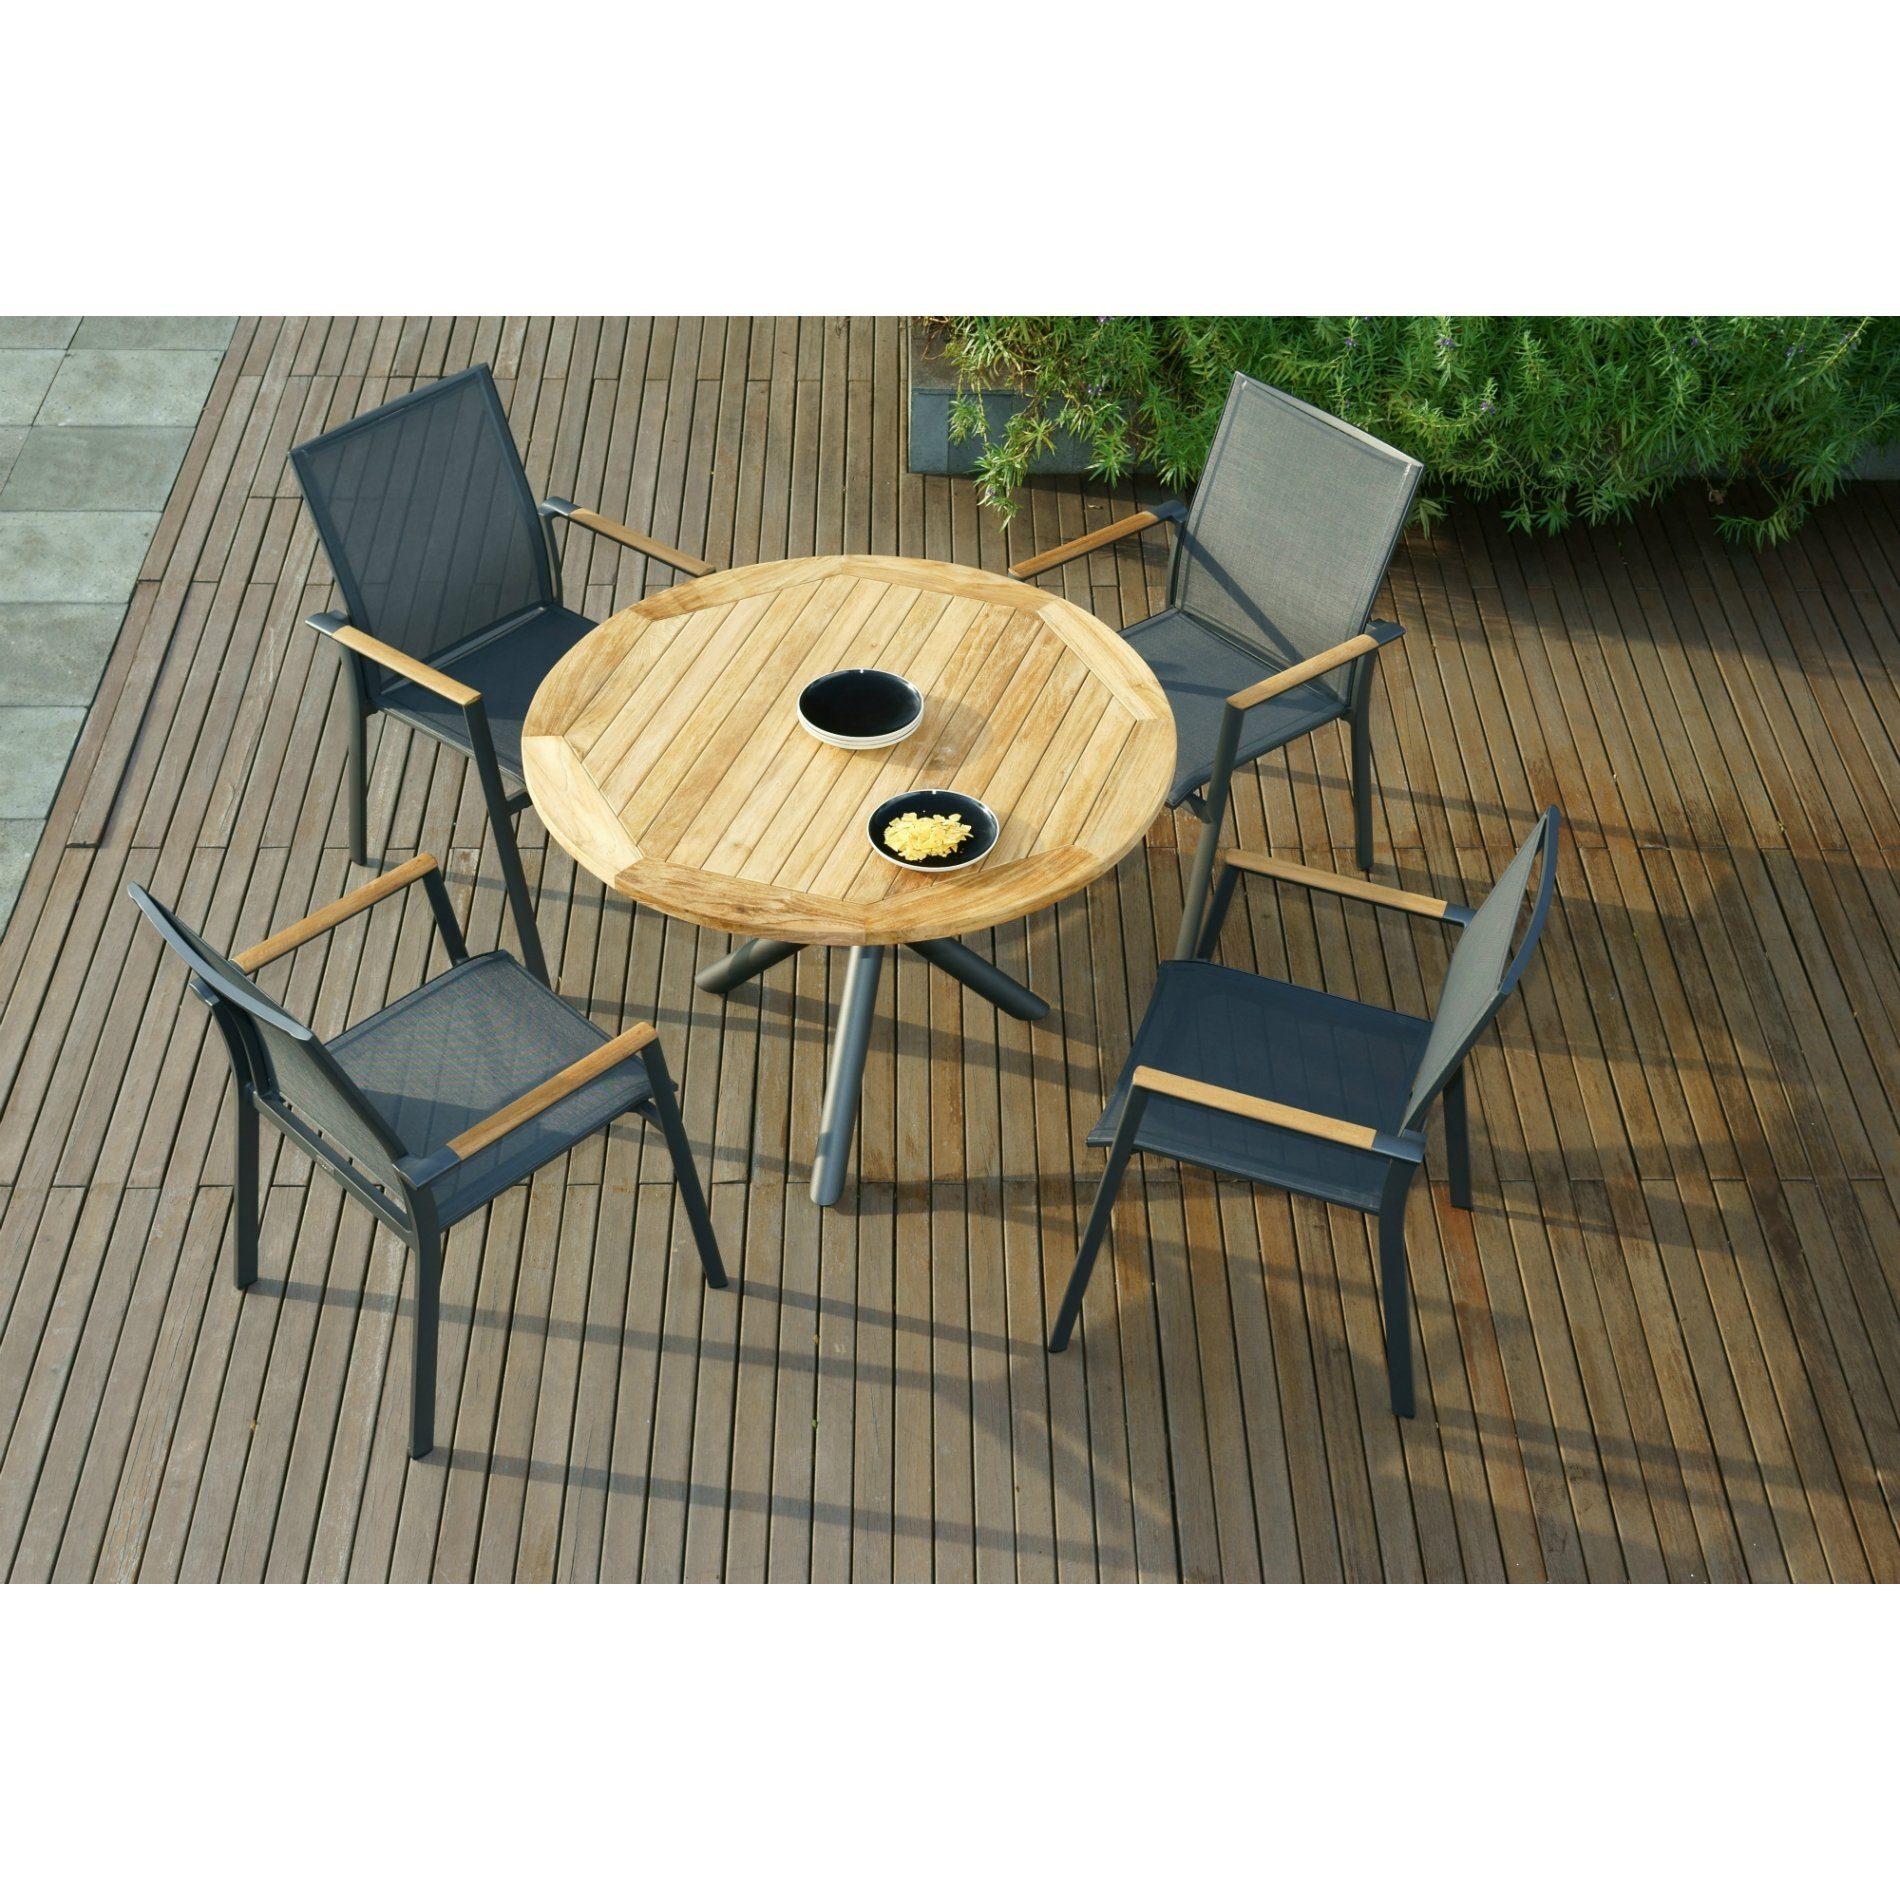 zebra gartenm bel set mit stuhl fly und tisch mikado aluminium teakholz. Black Bedroom Furniture Sets. Home Design Ideas